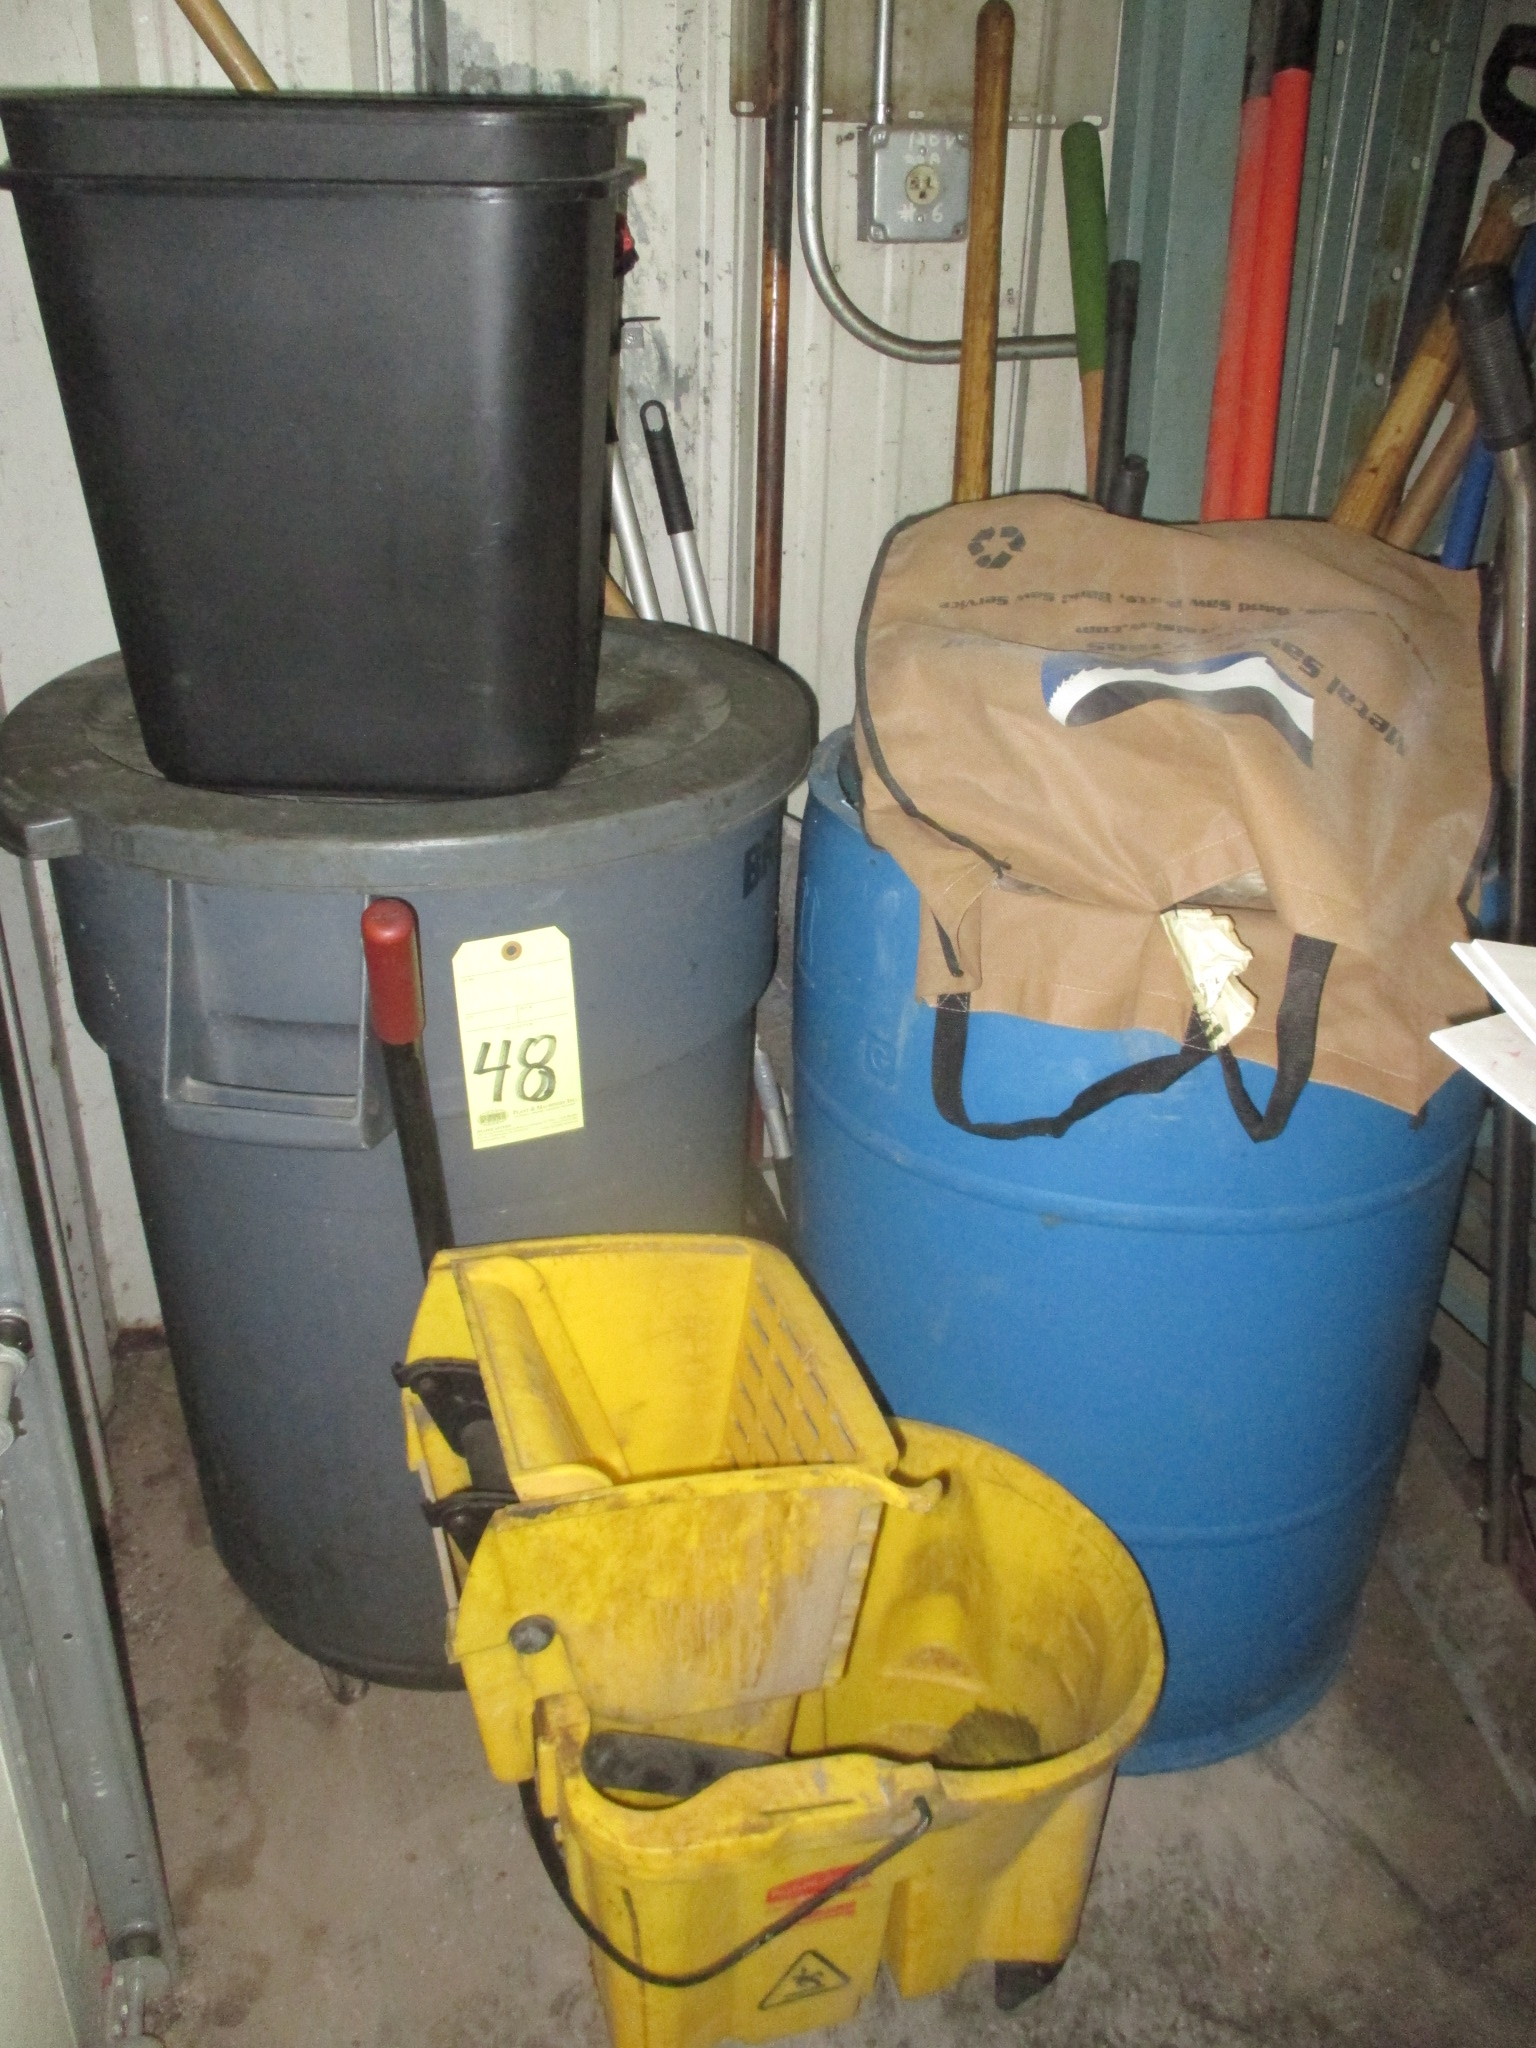 Lot 48 - LOT CONSISTING OF: trash cans, brooms, mops, etc.